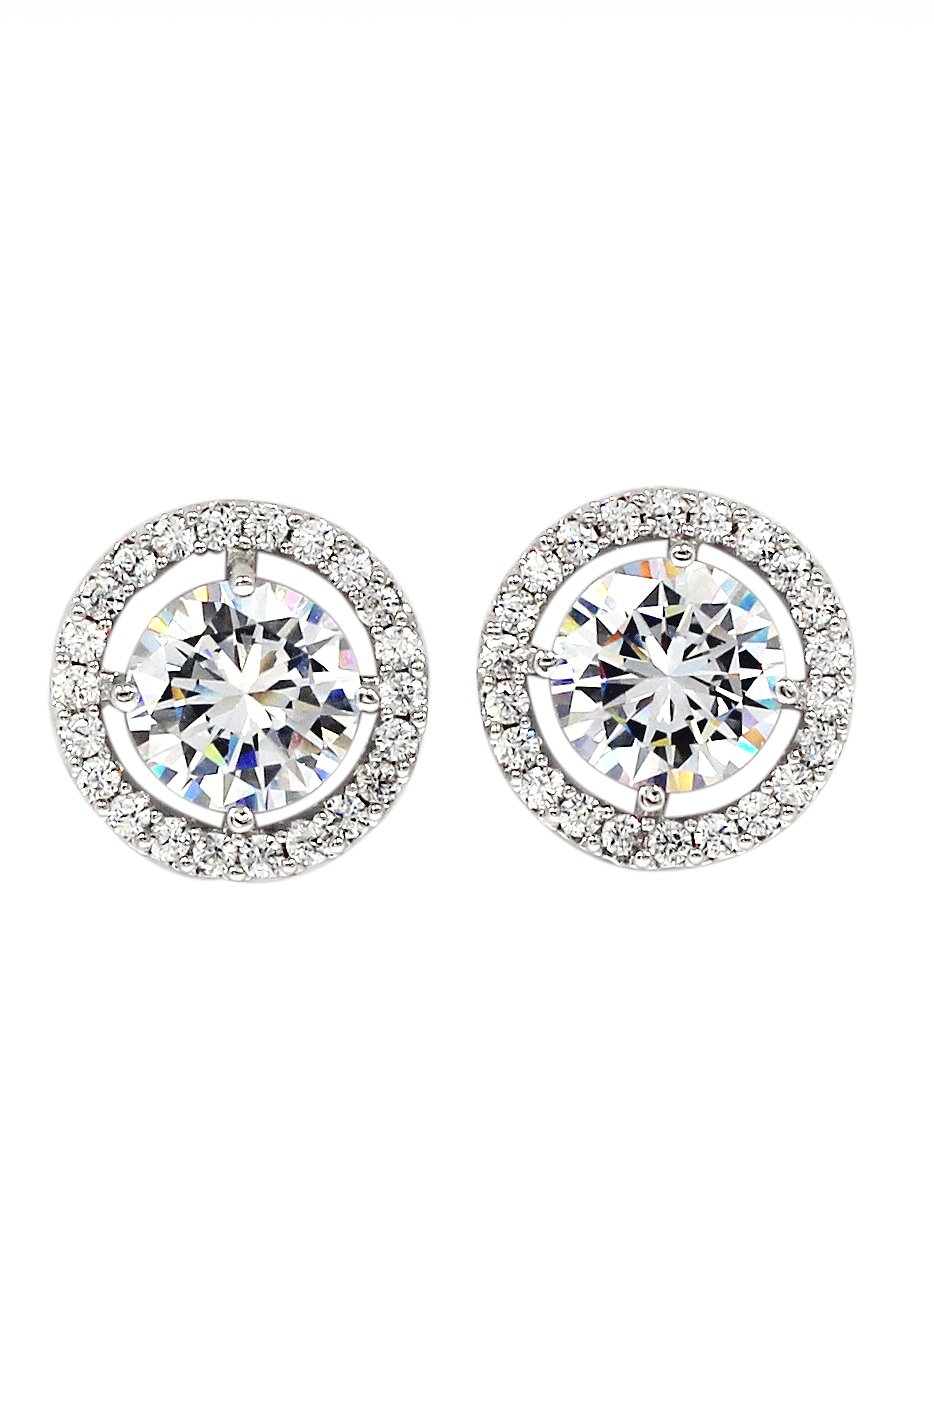 Sparkling shining crystal silver earrings